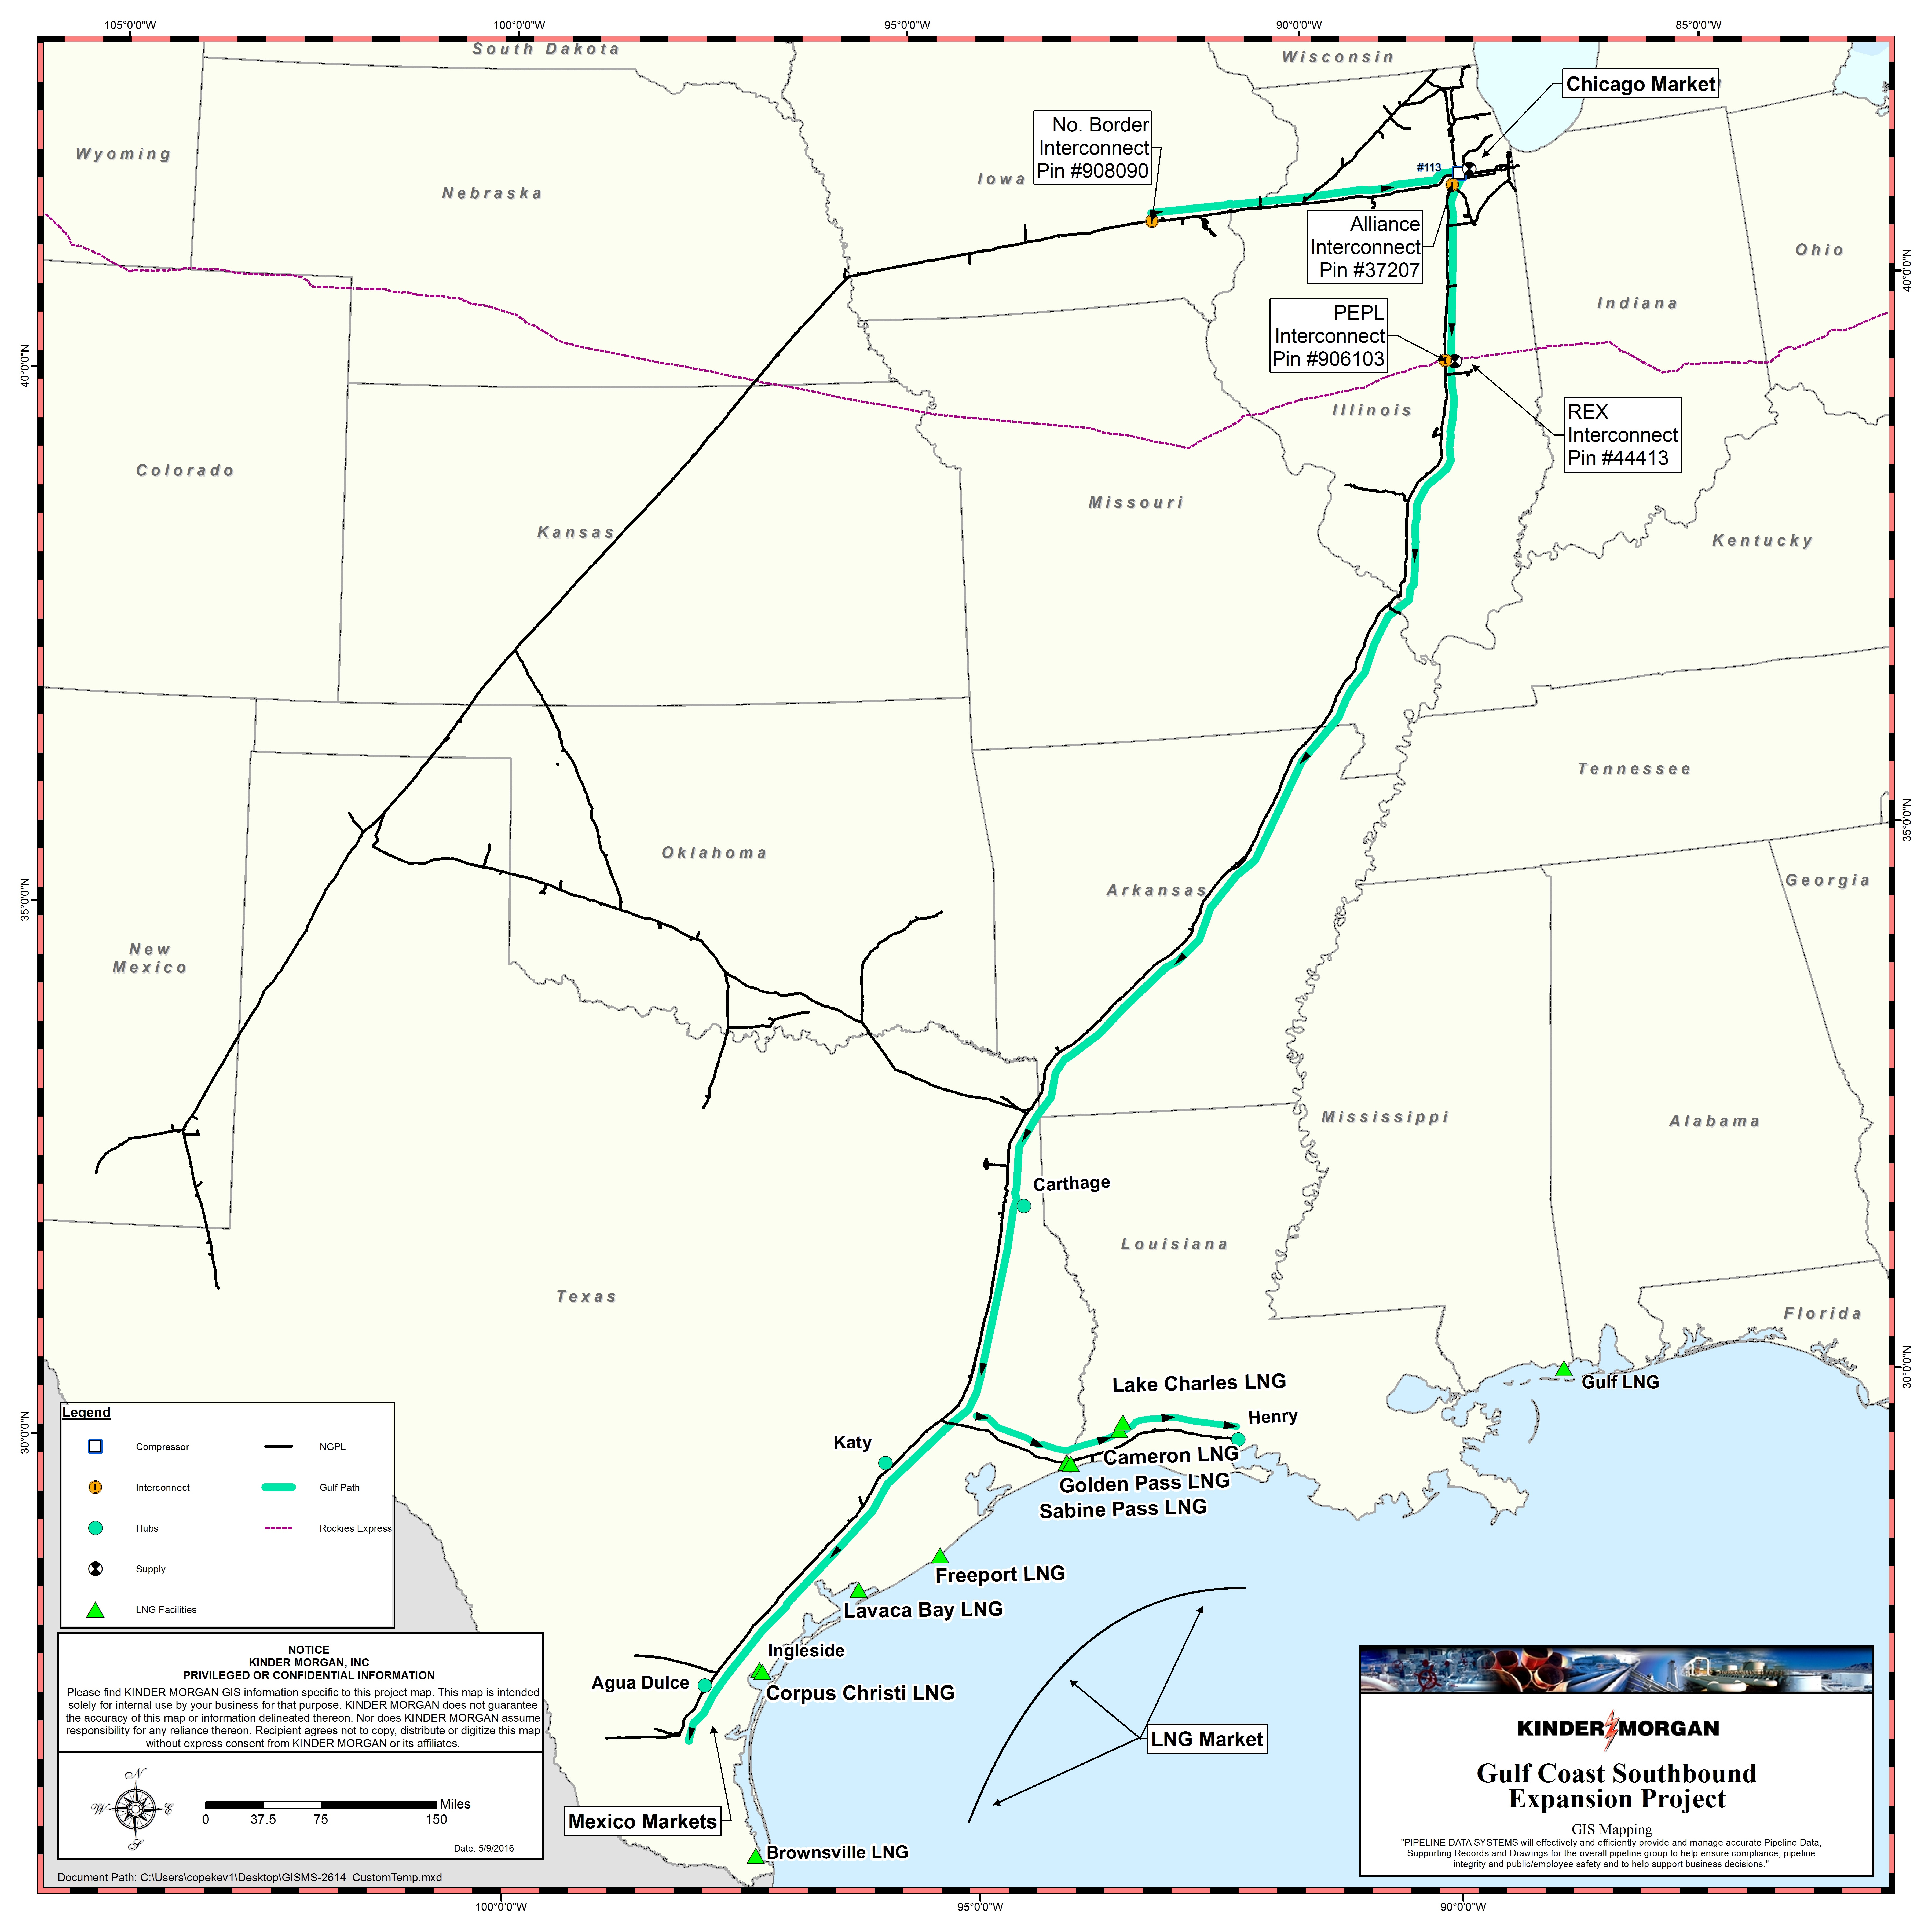 Turbine Powered pression For Gulf Coast Expansion Project